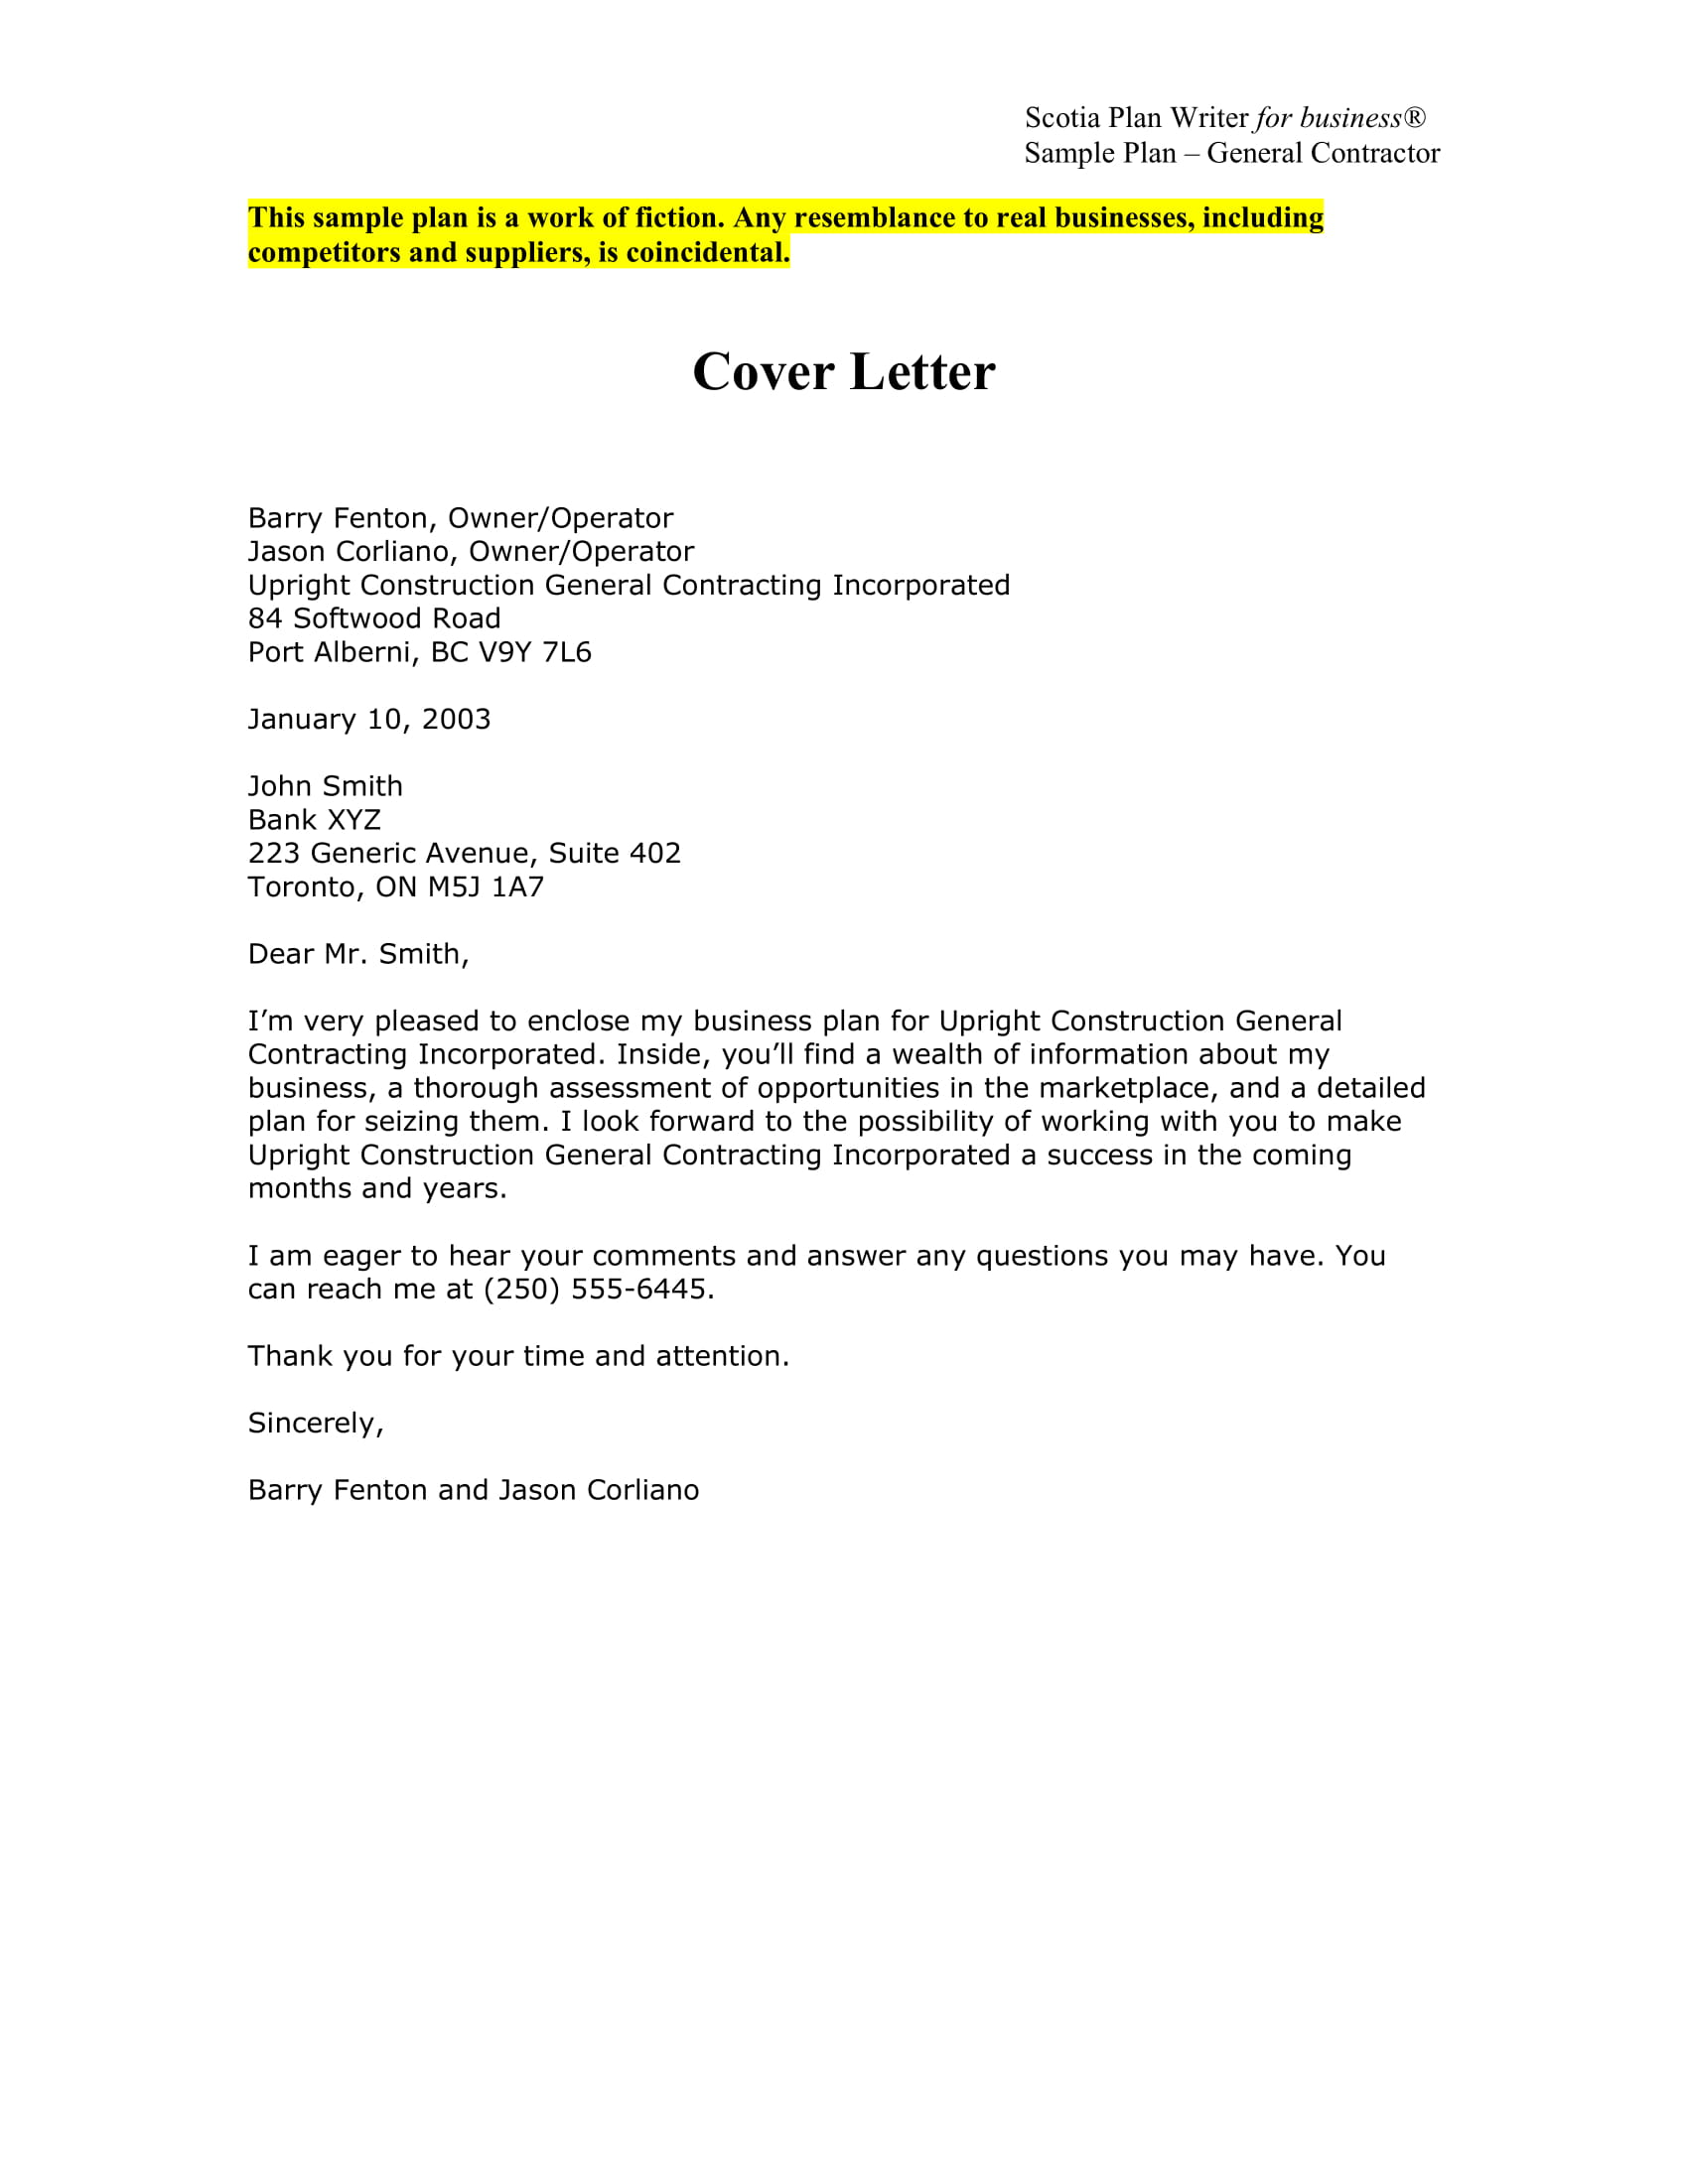 Business Proposal Cover Letter 01